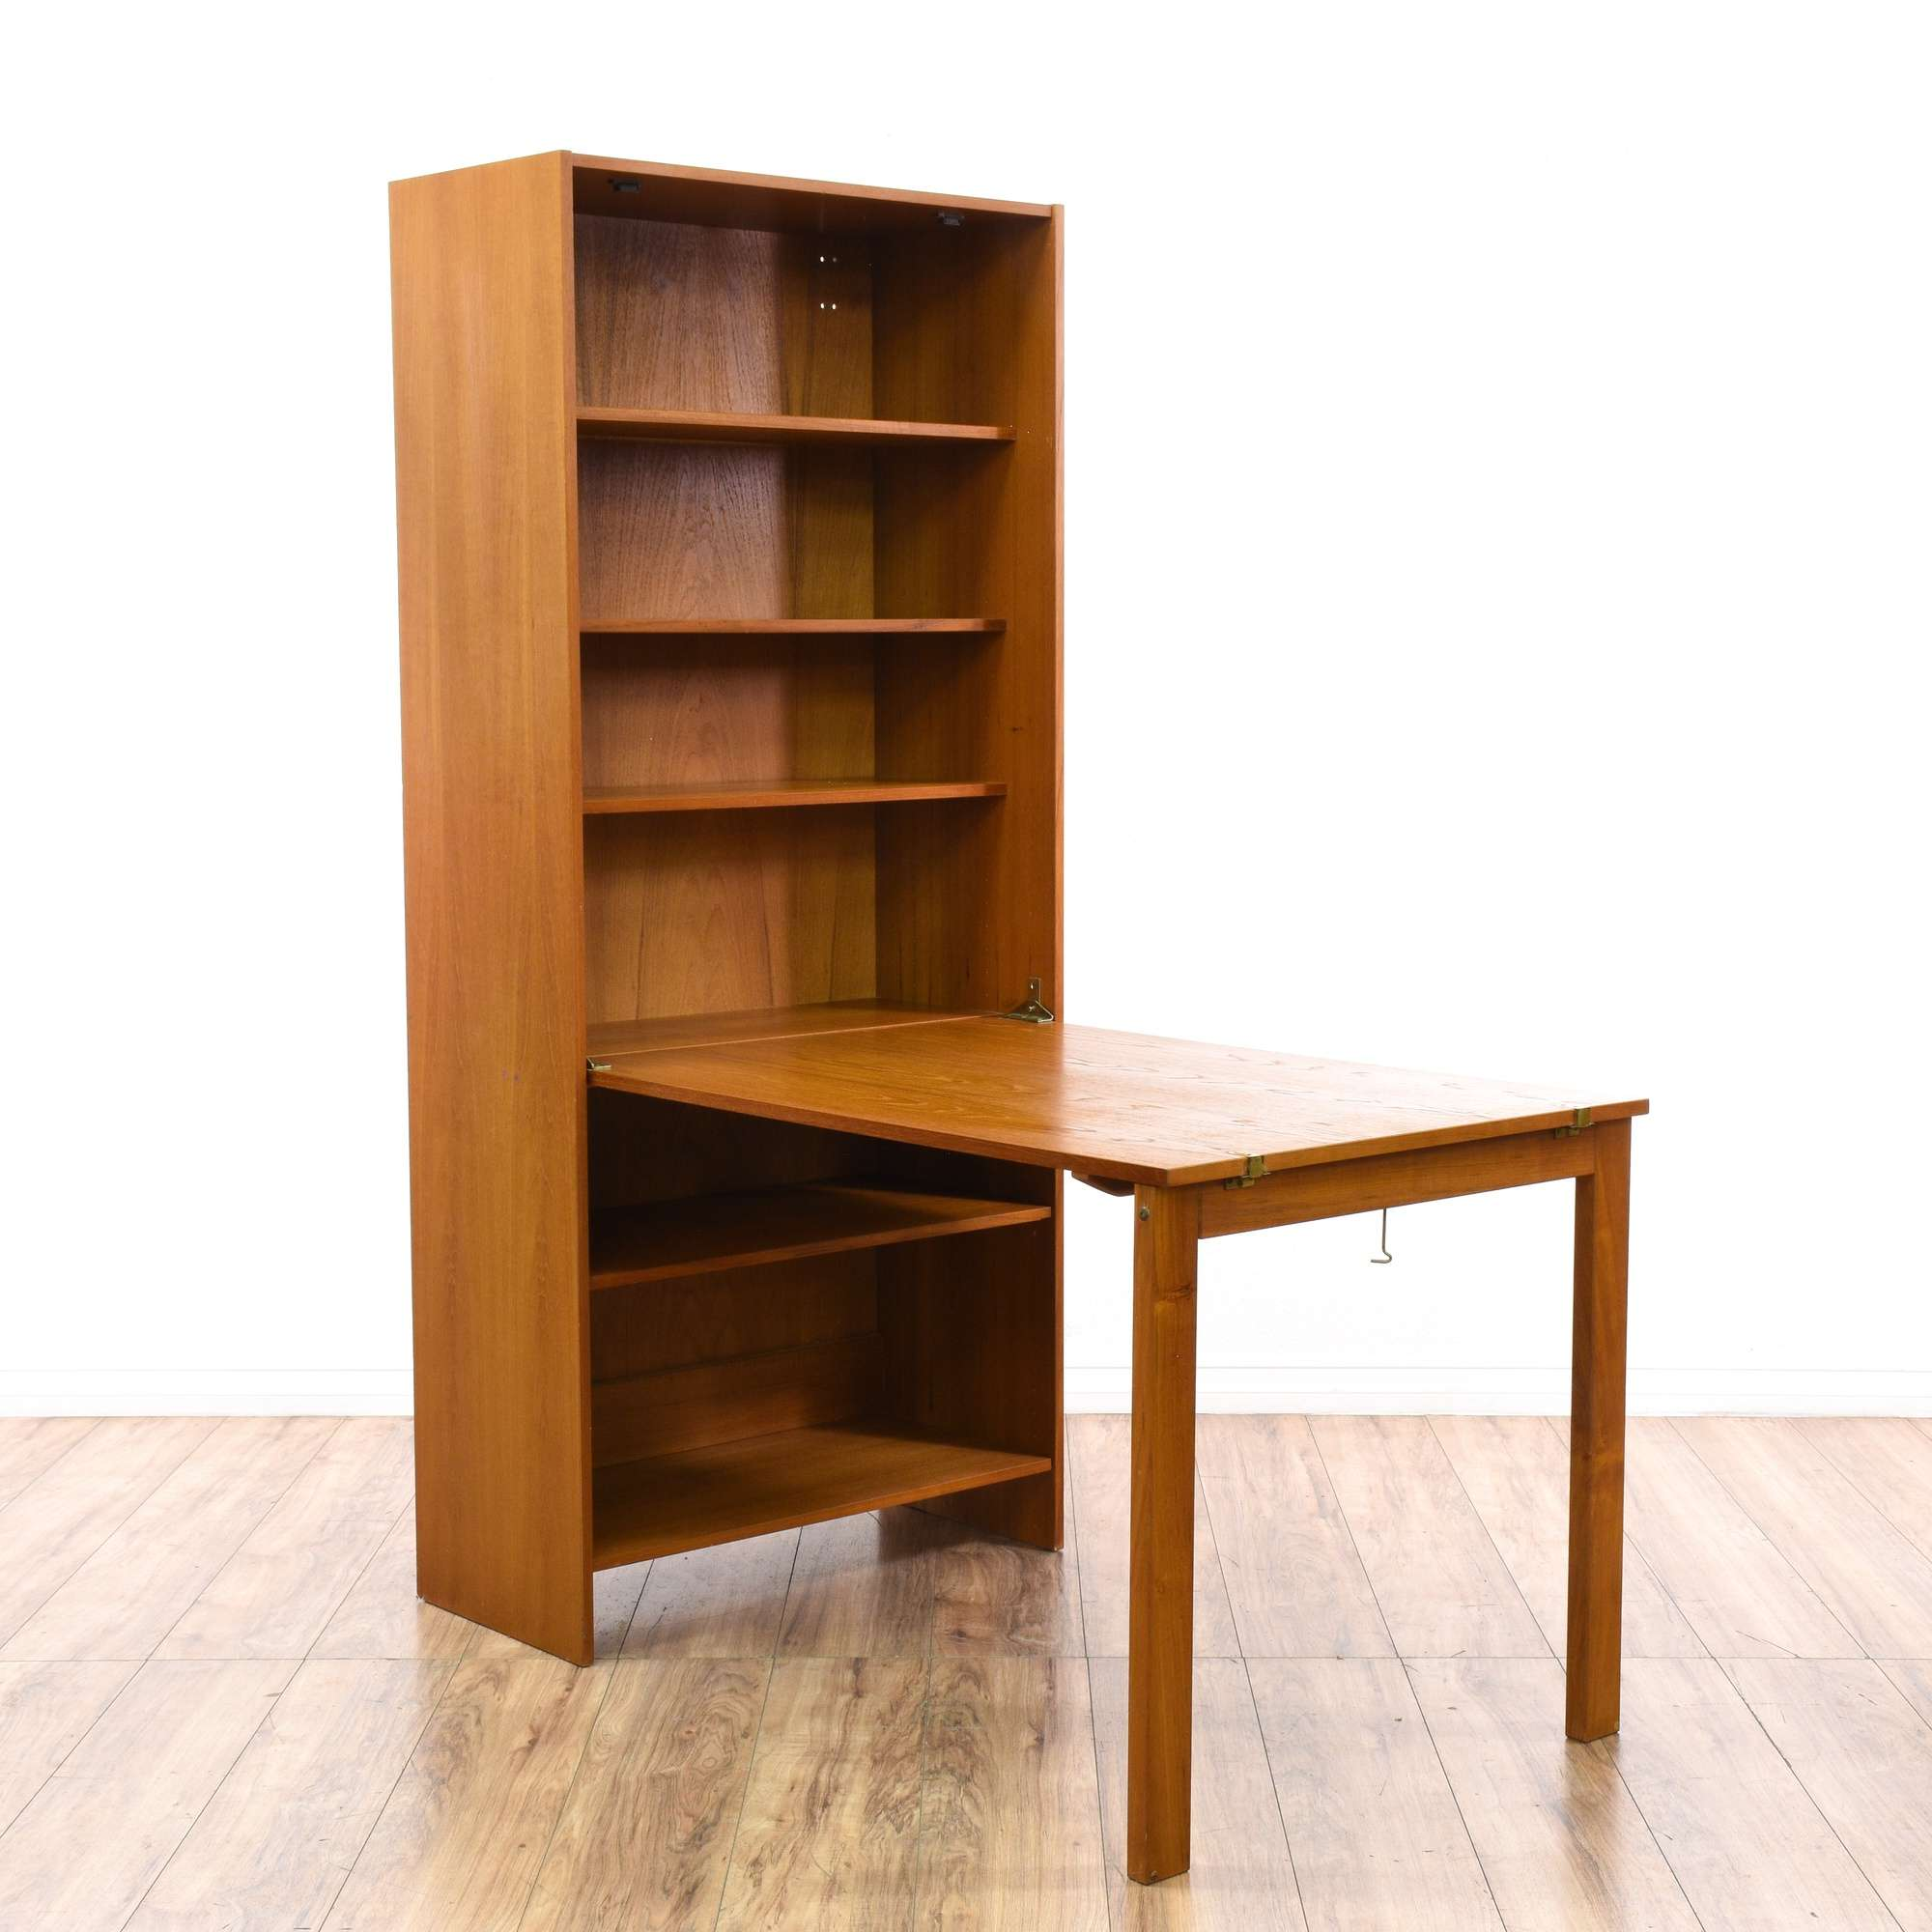 hidden console stands mobile catalog computer id image gallery desk caddy tv contemporary with product